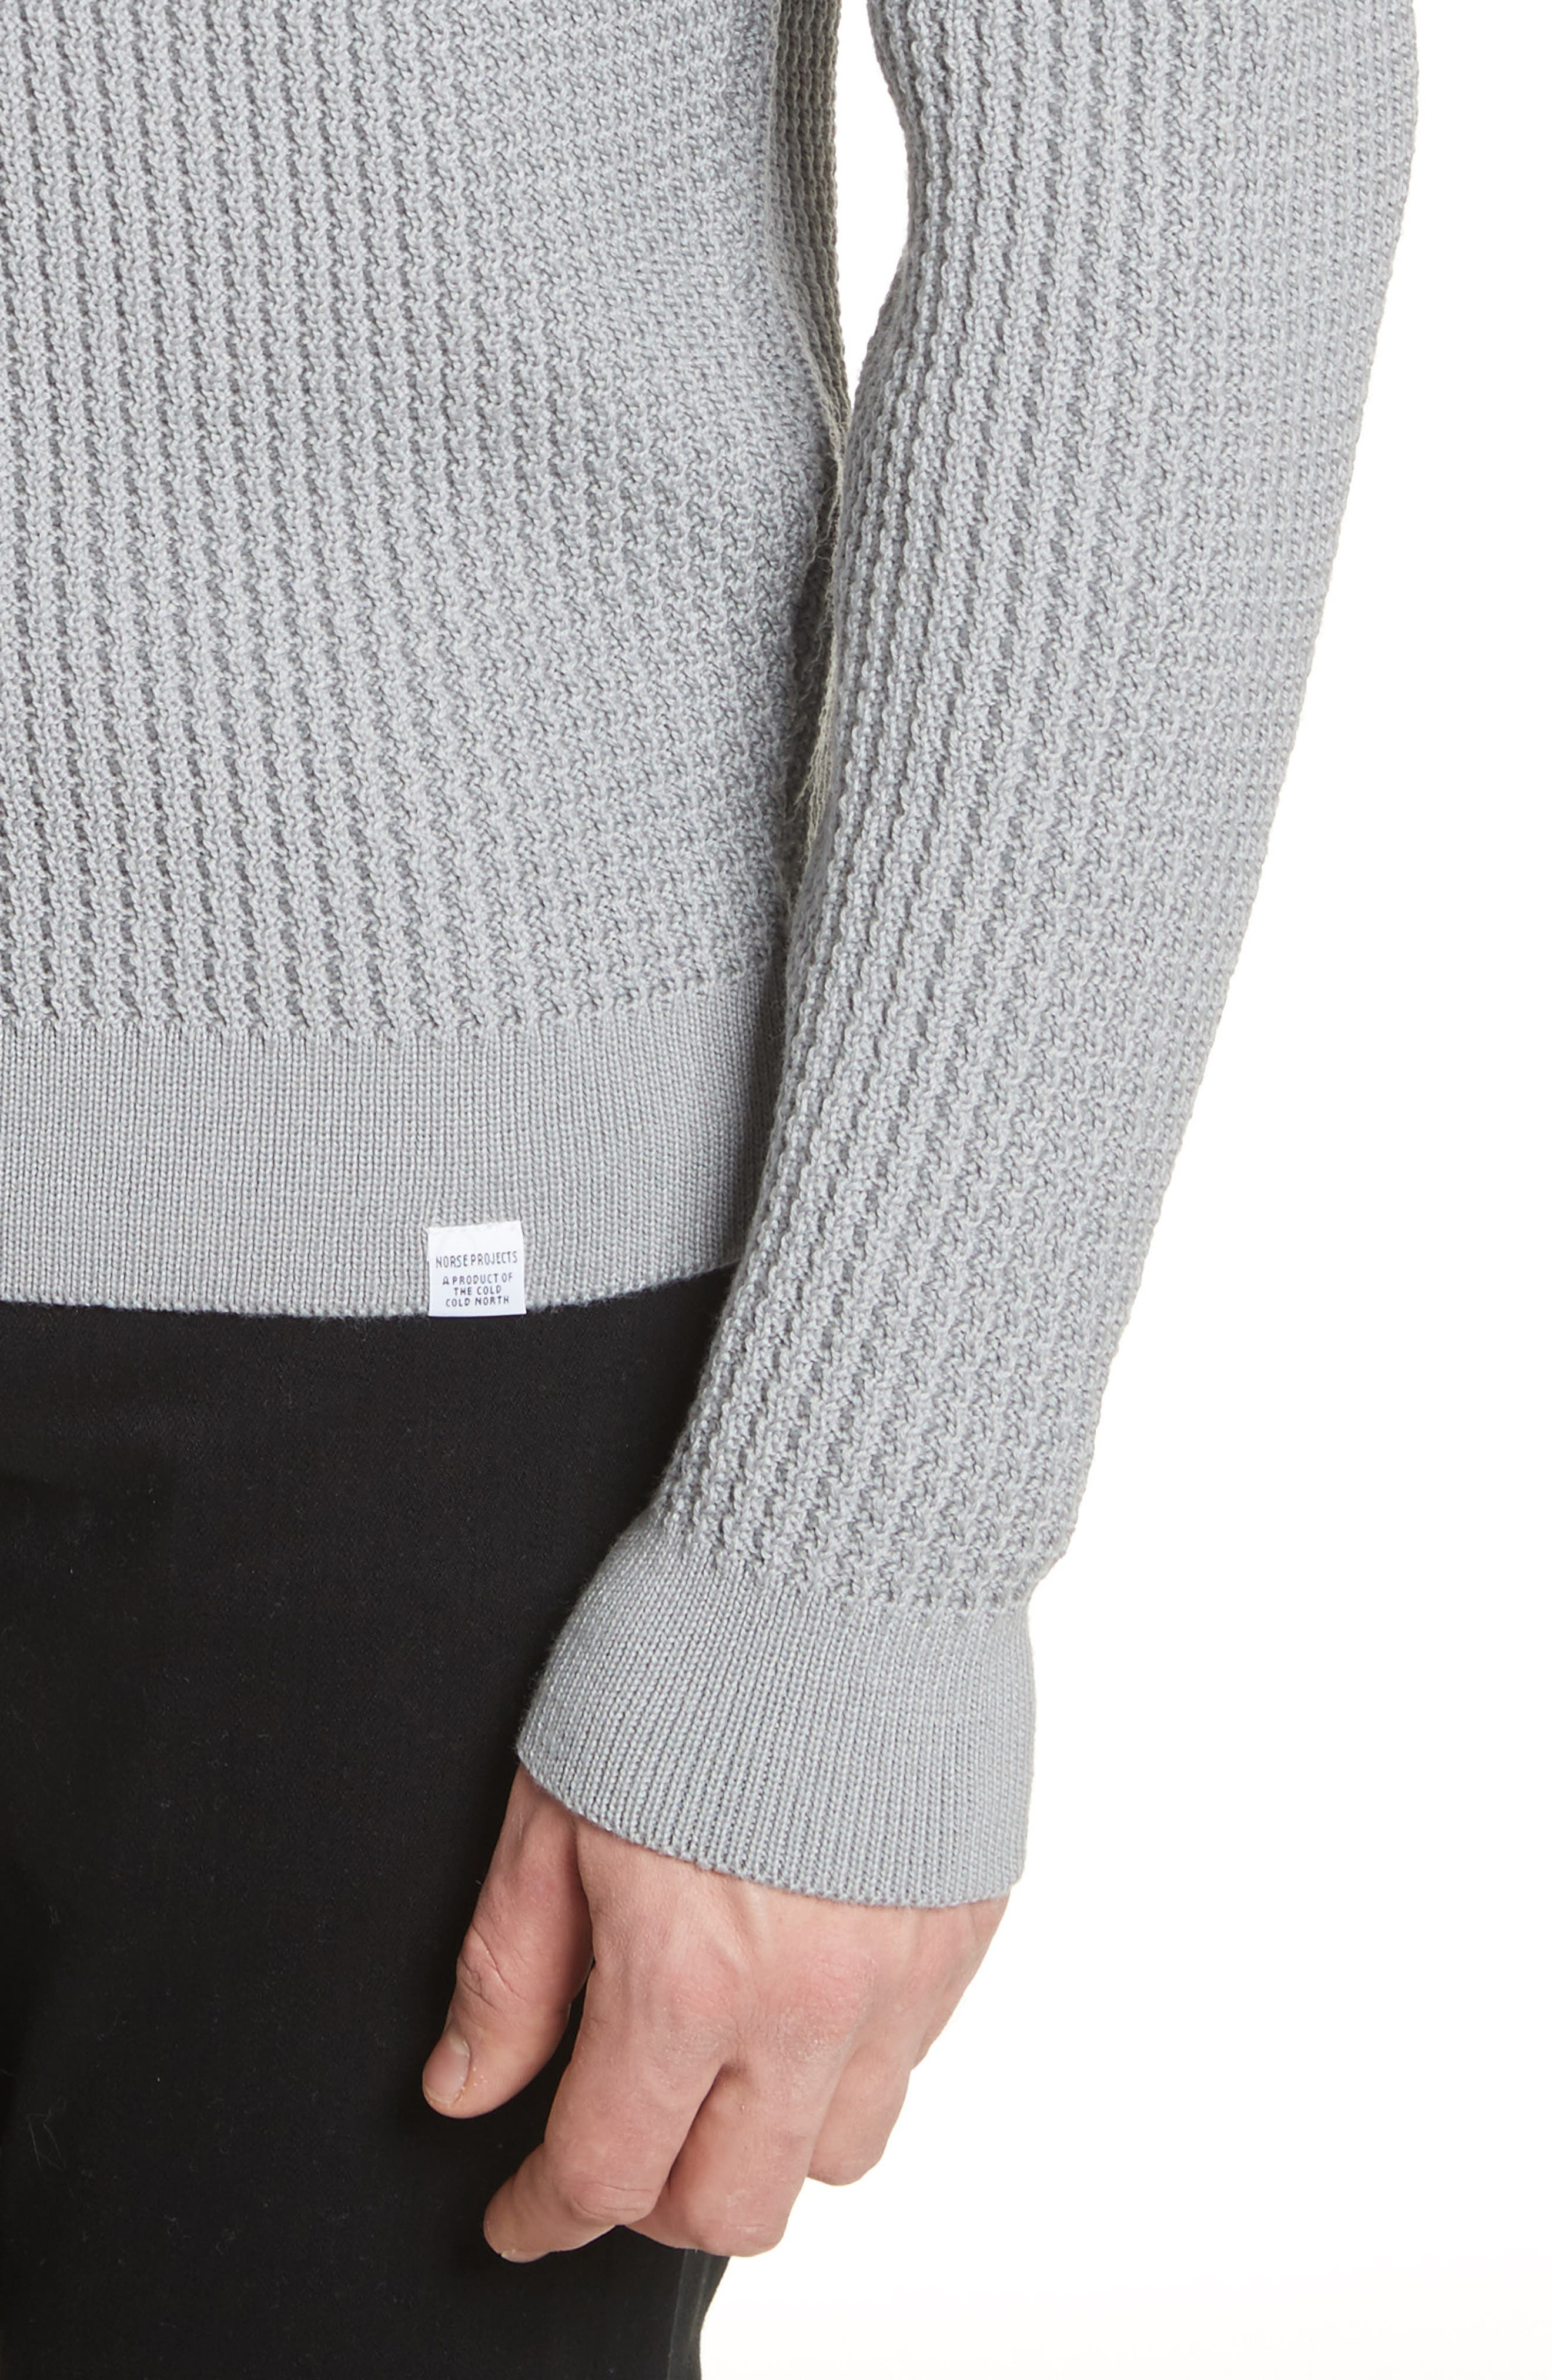 Sigfred Merino Wool Sweater,                             Alternate thumbnail 4, color,                             Titanium